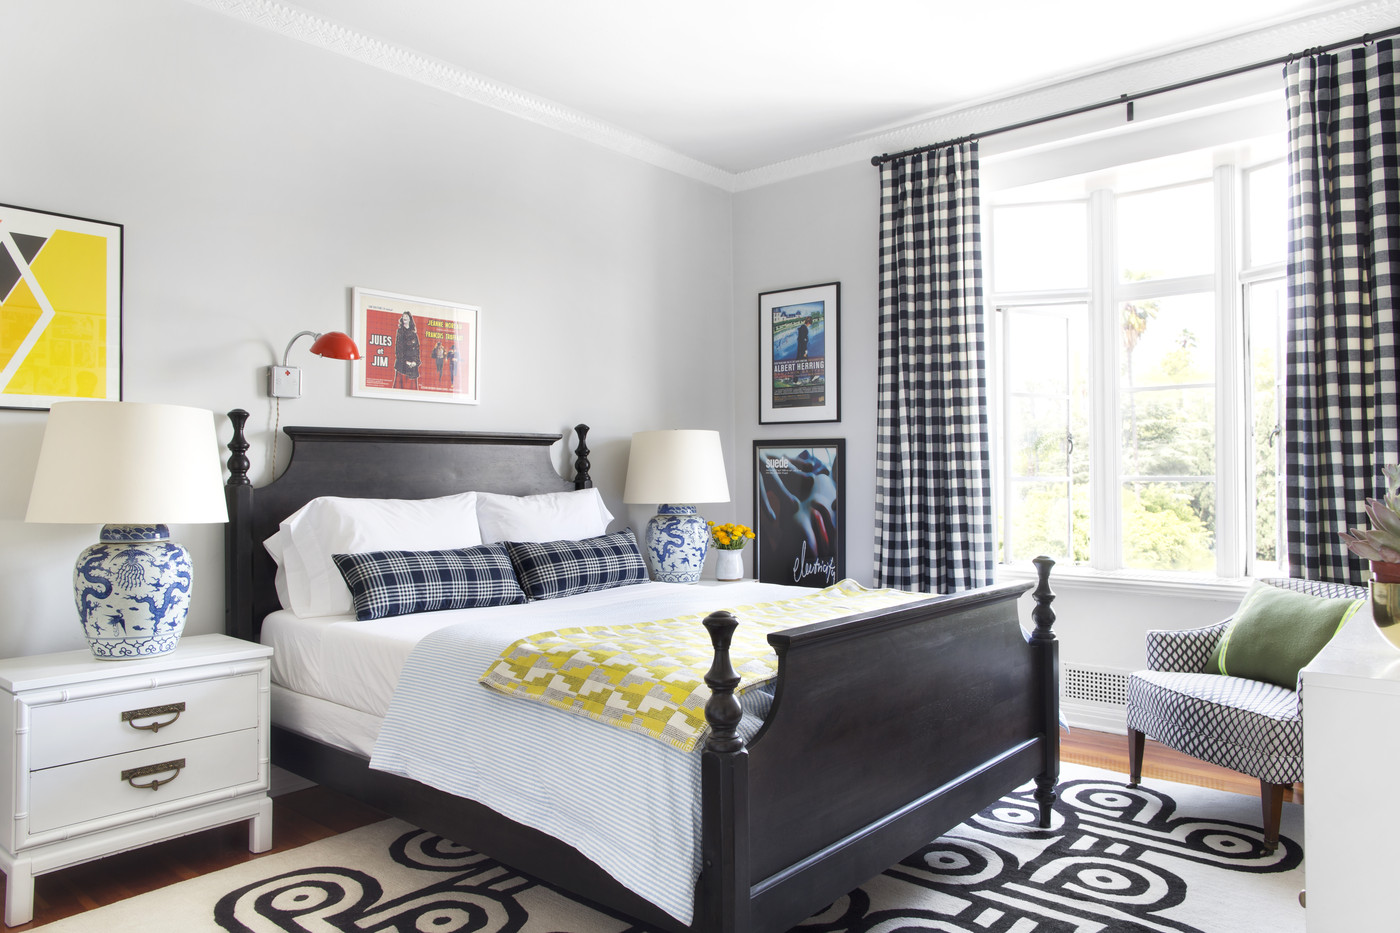 Most Beautifull Deco Paint Complete Bed Set: Decorating With Plaid